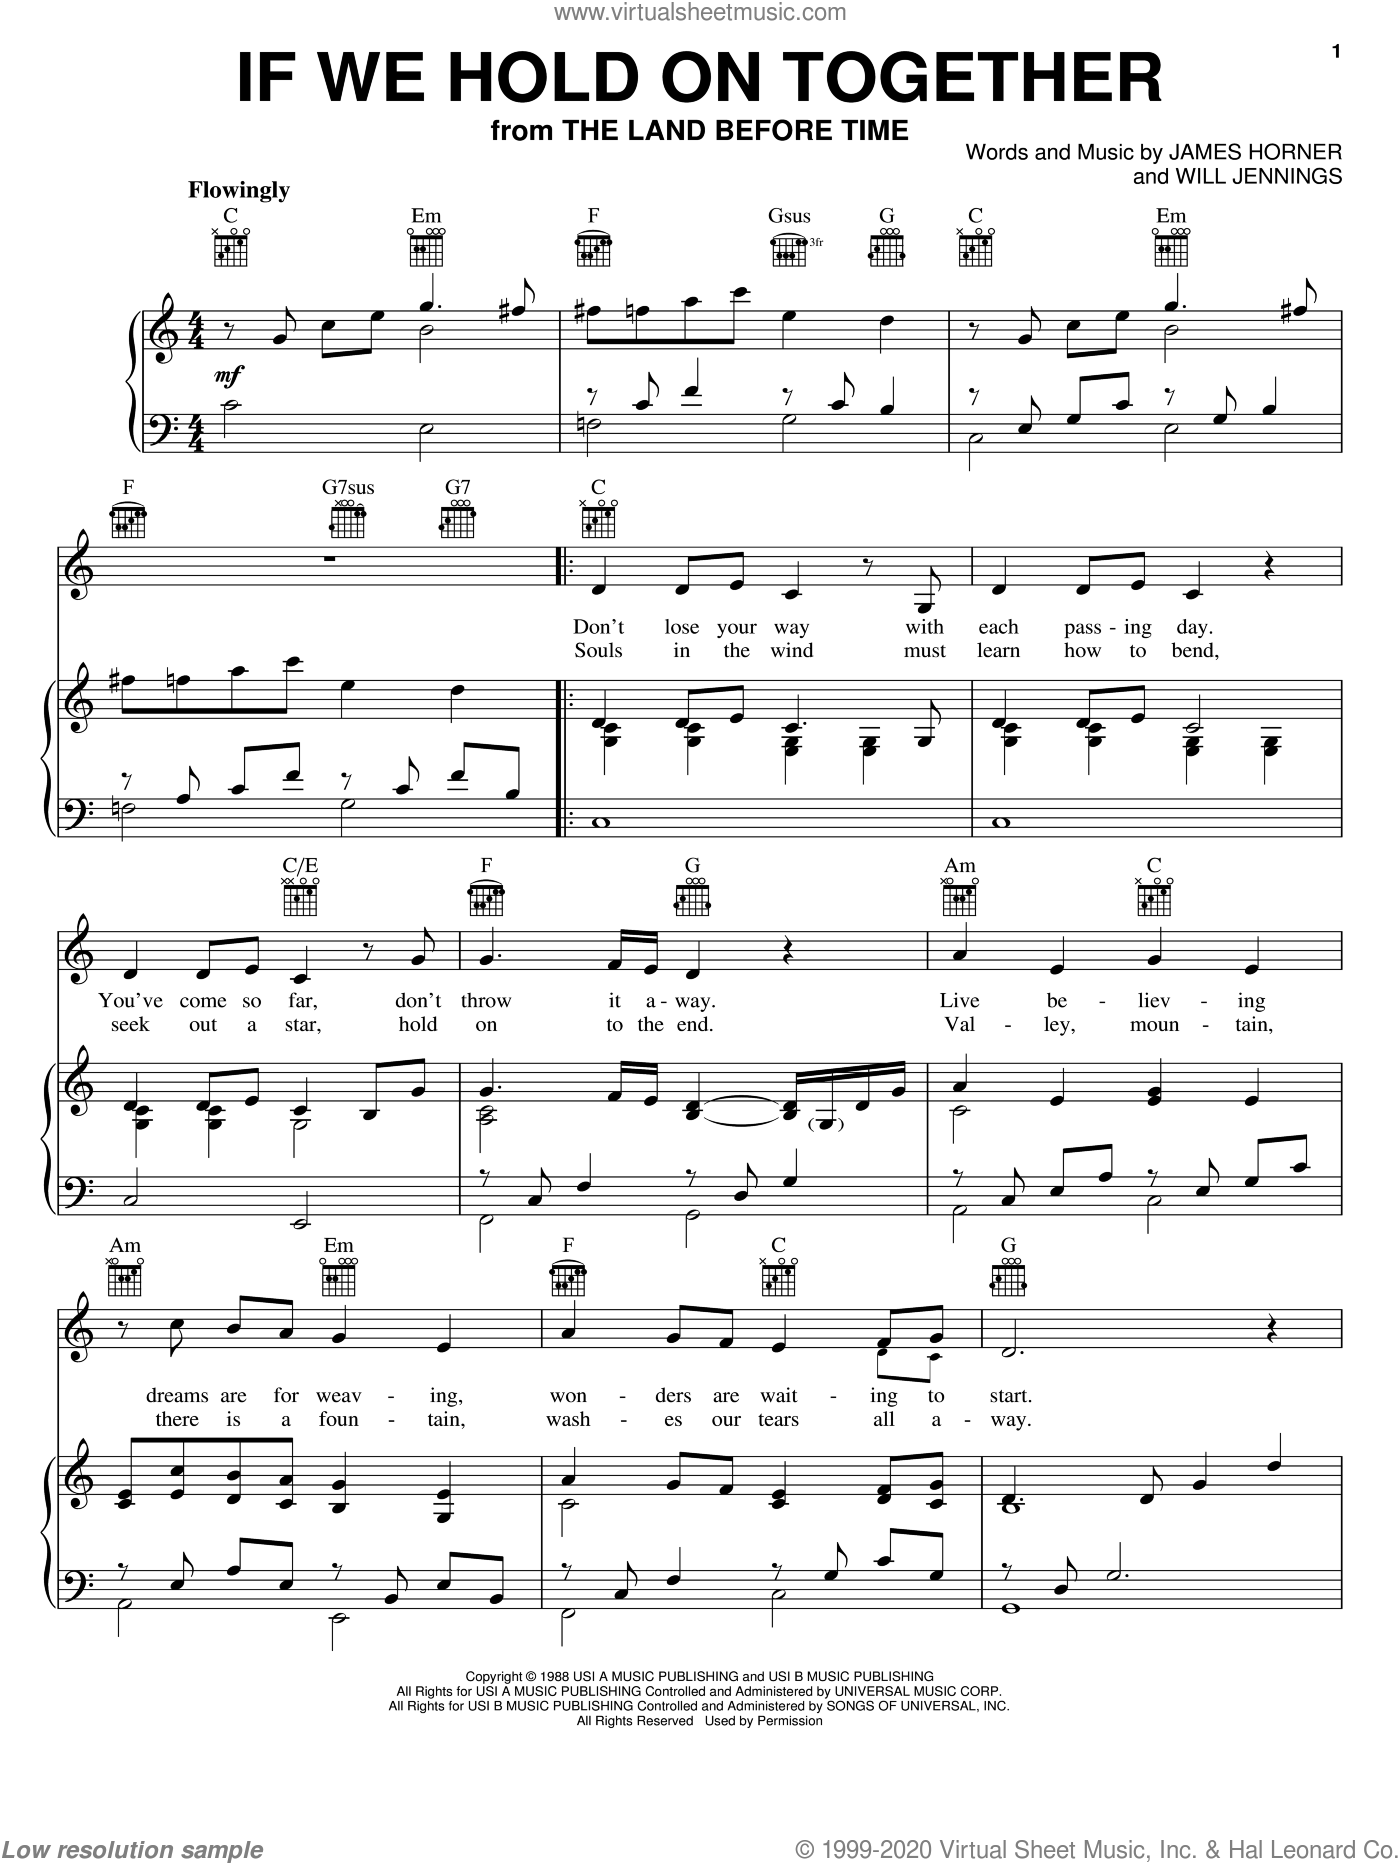 If We Hold On Together sheet music for voice, piano or guitar by Diana Ross, James Horner and Will Jennings, intermediate voice, piano or guitar. Score Image Preview.